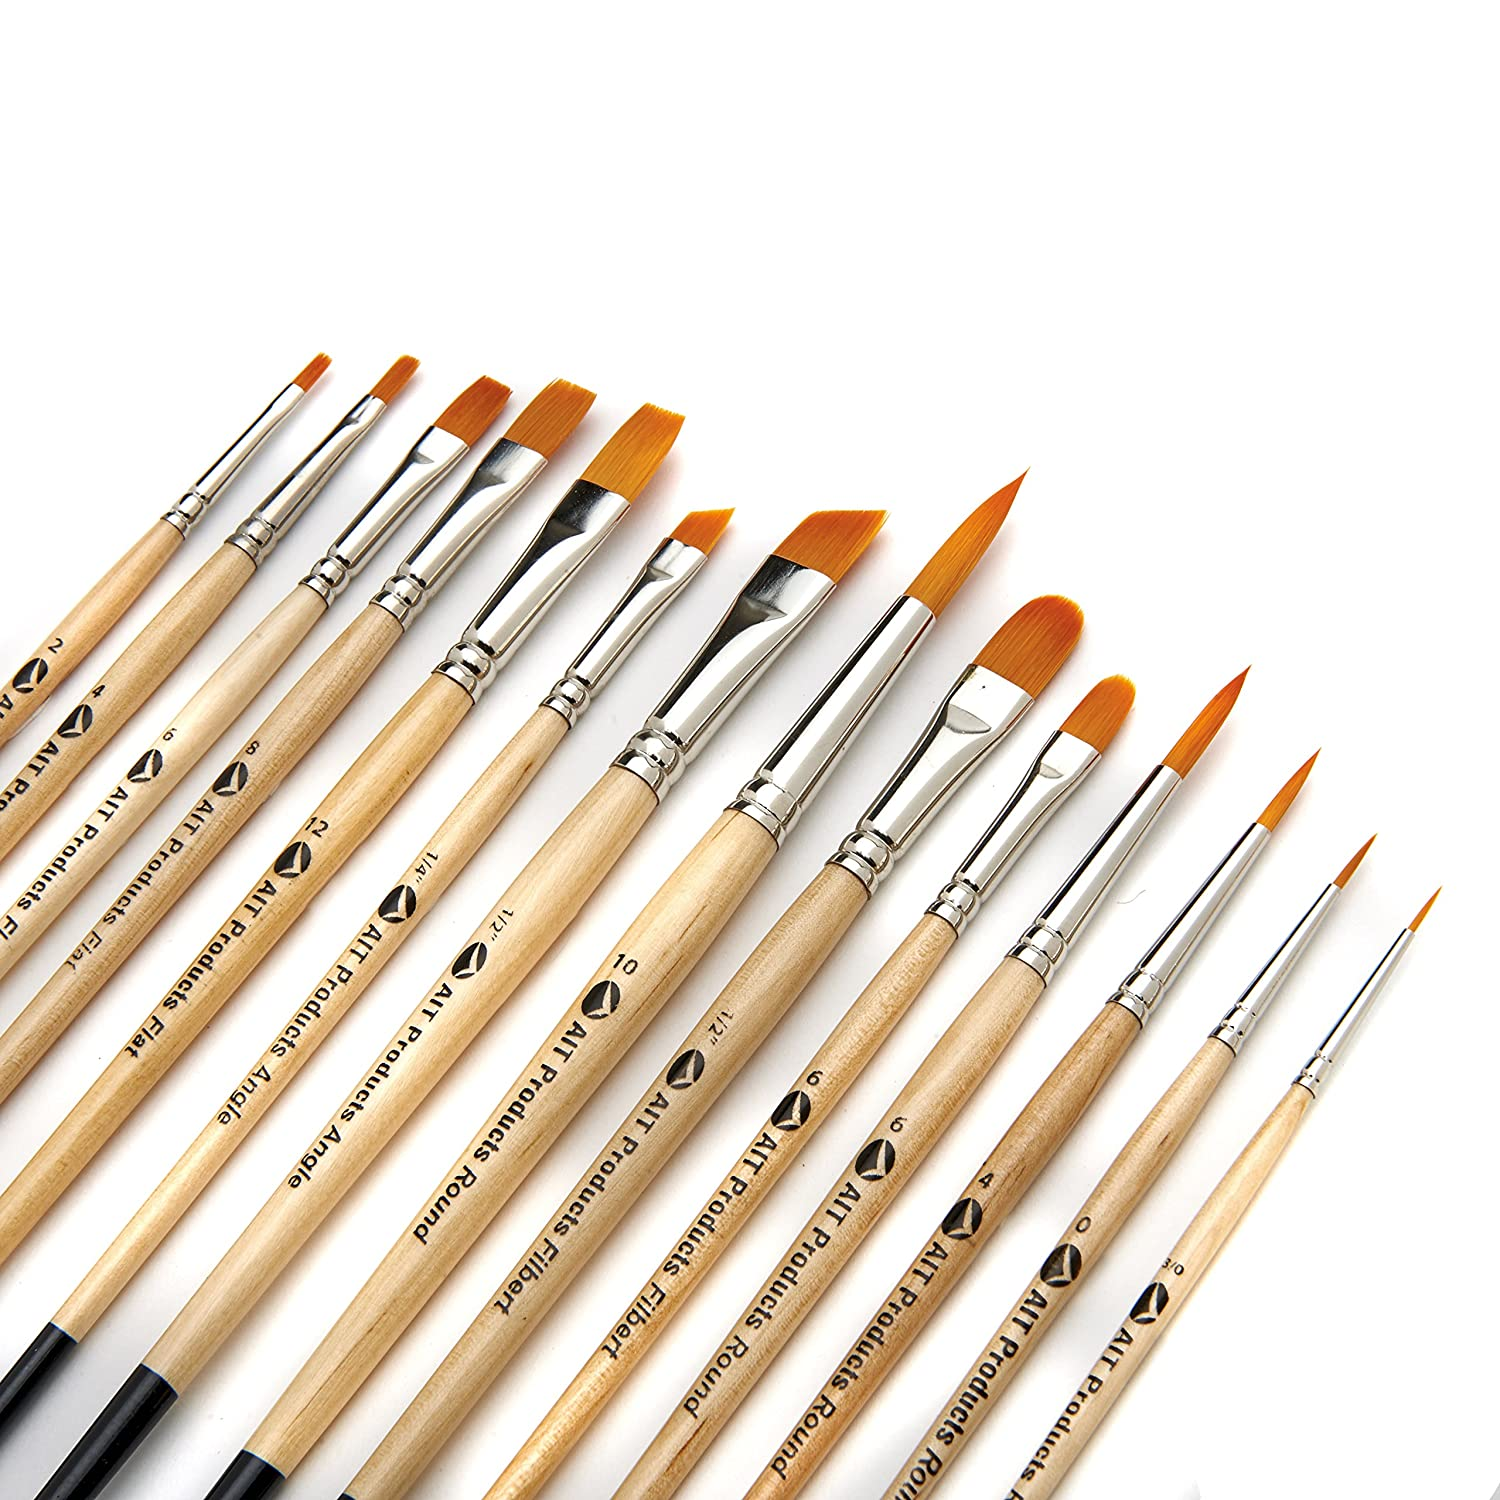 Best Artist Paint Brushes 2016 - 2017 - Editor's Top 5 ...